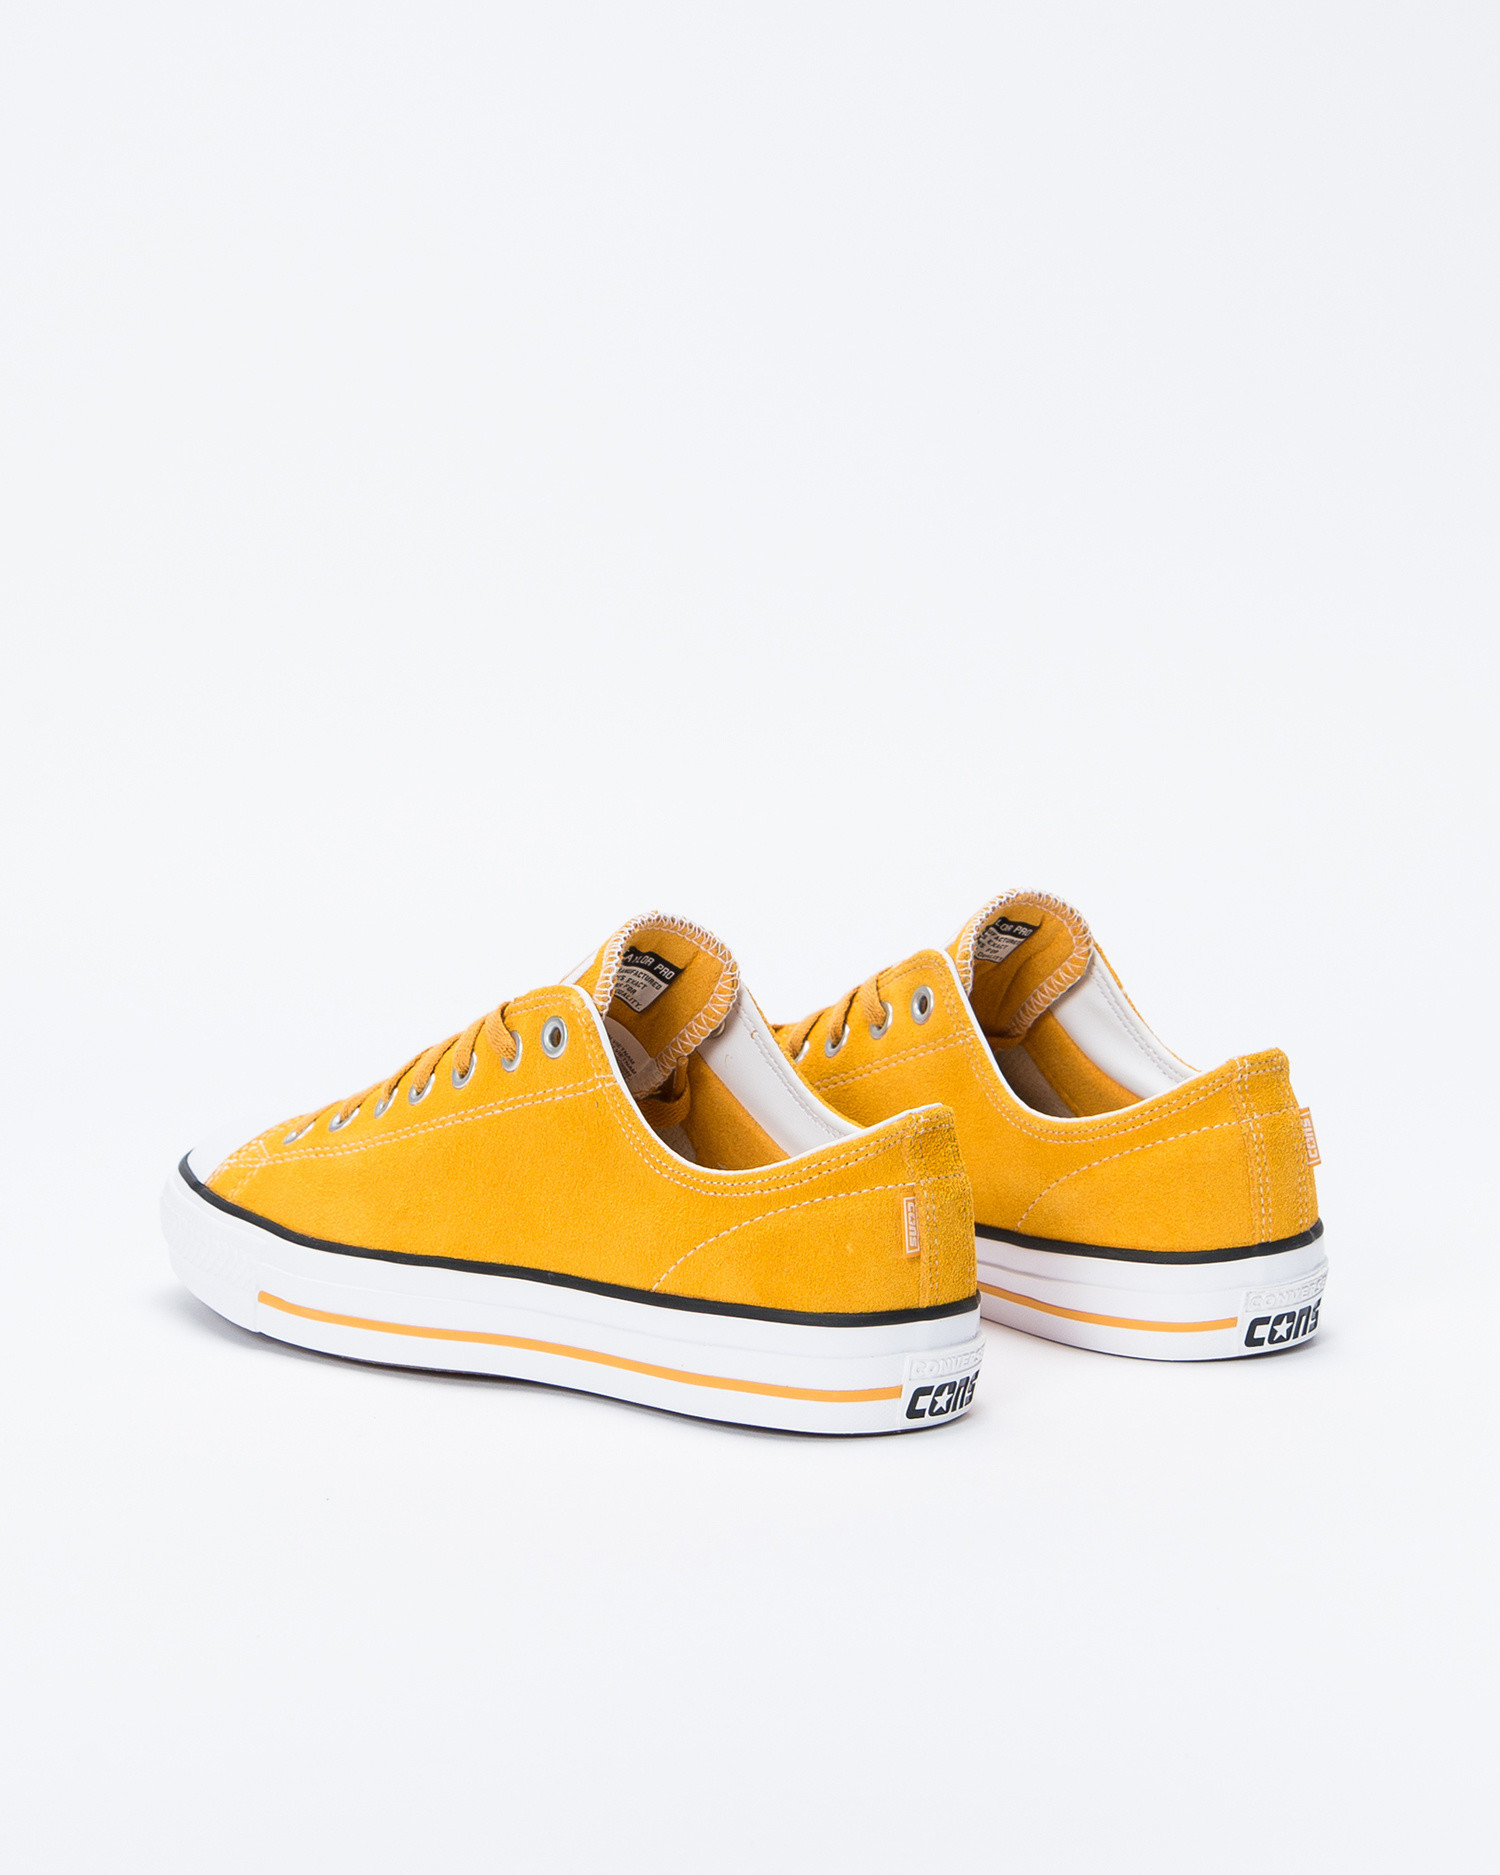 Converse Chuck Taylor All star Pro OX Sunflower Gold/White/sunflower